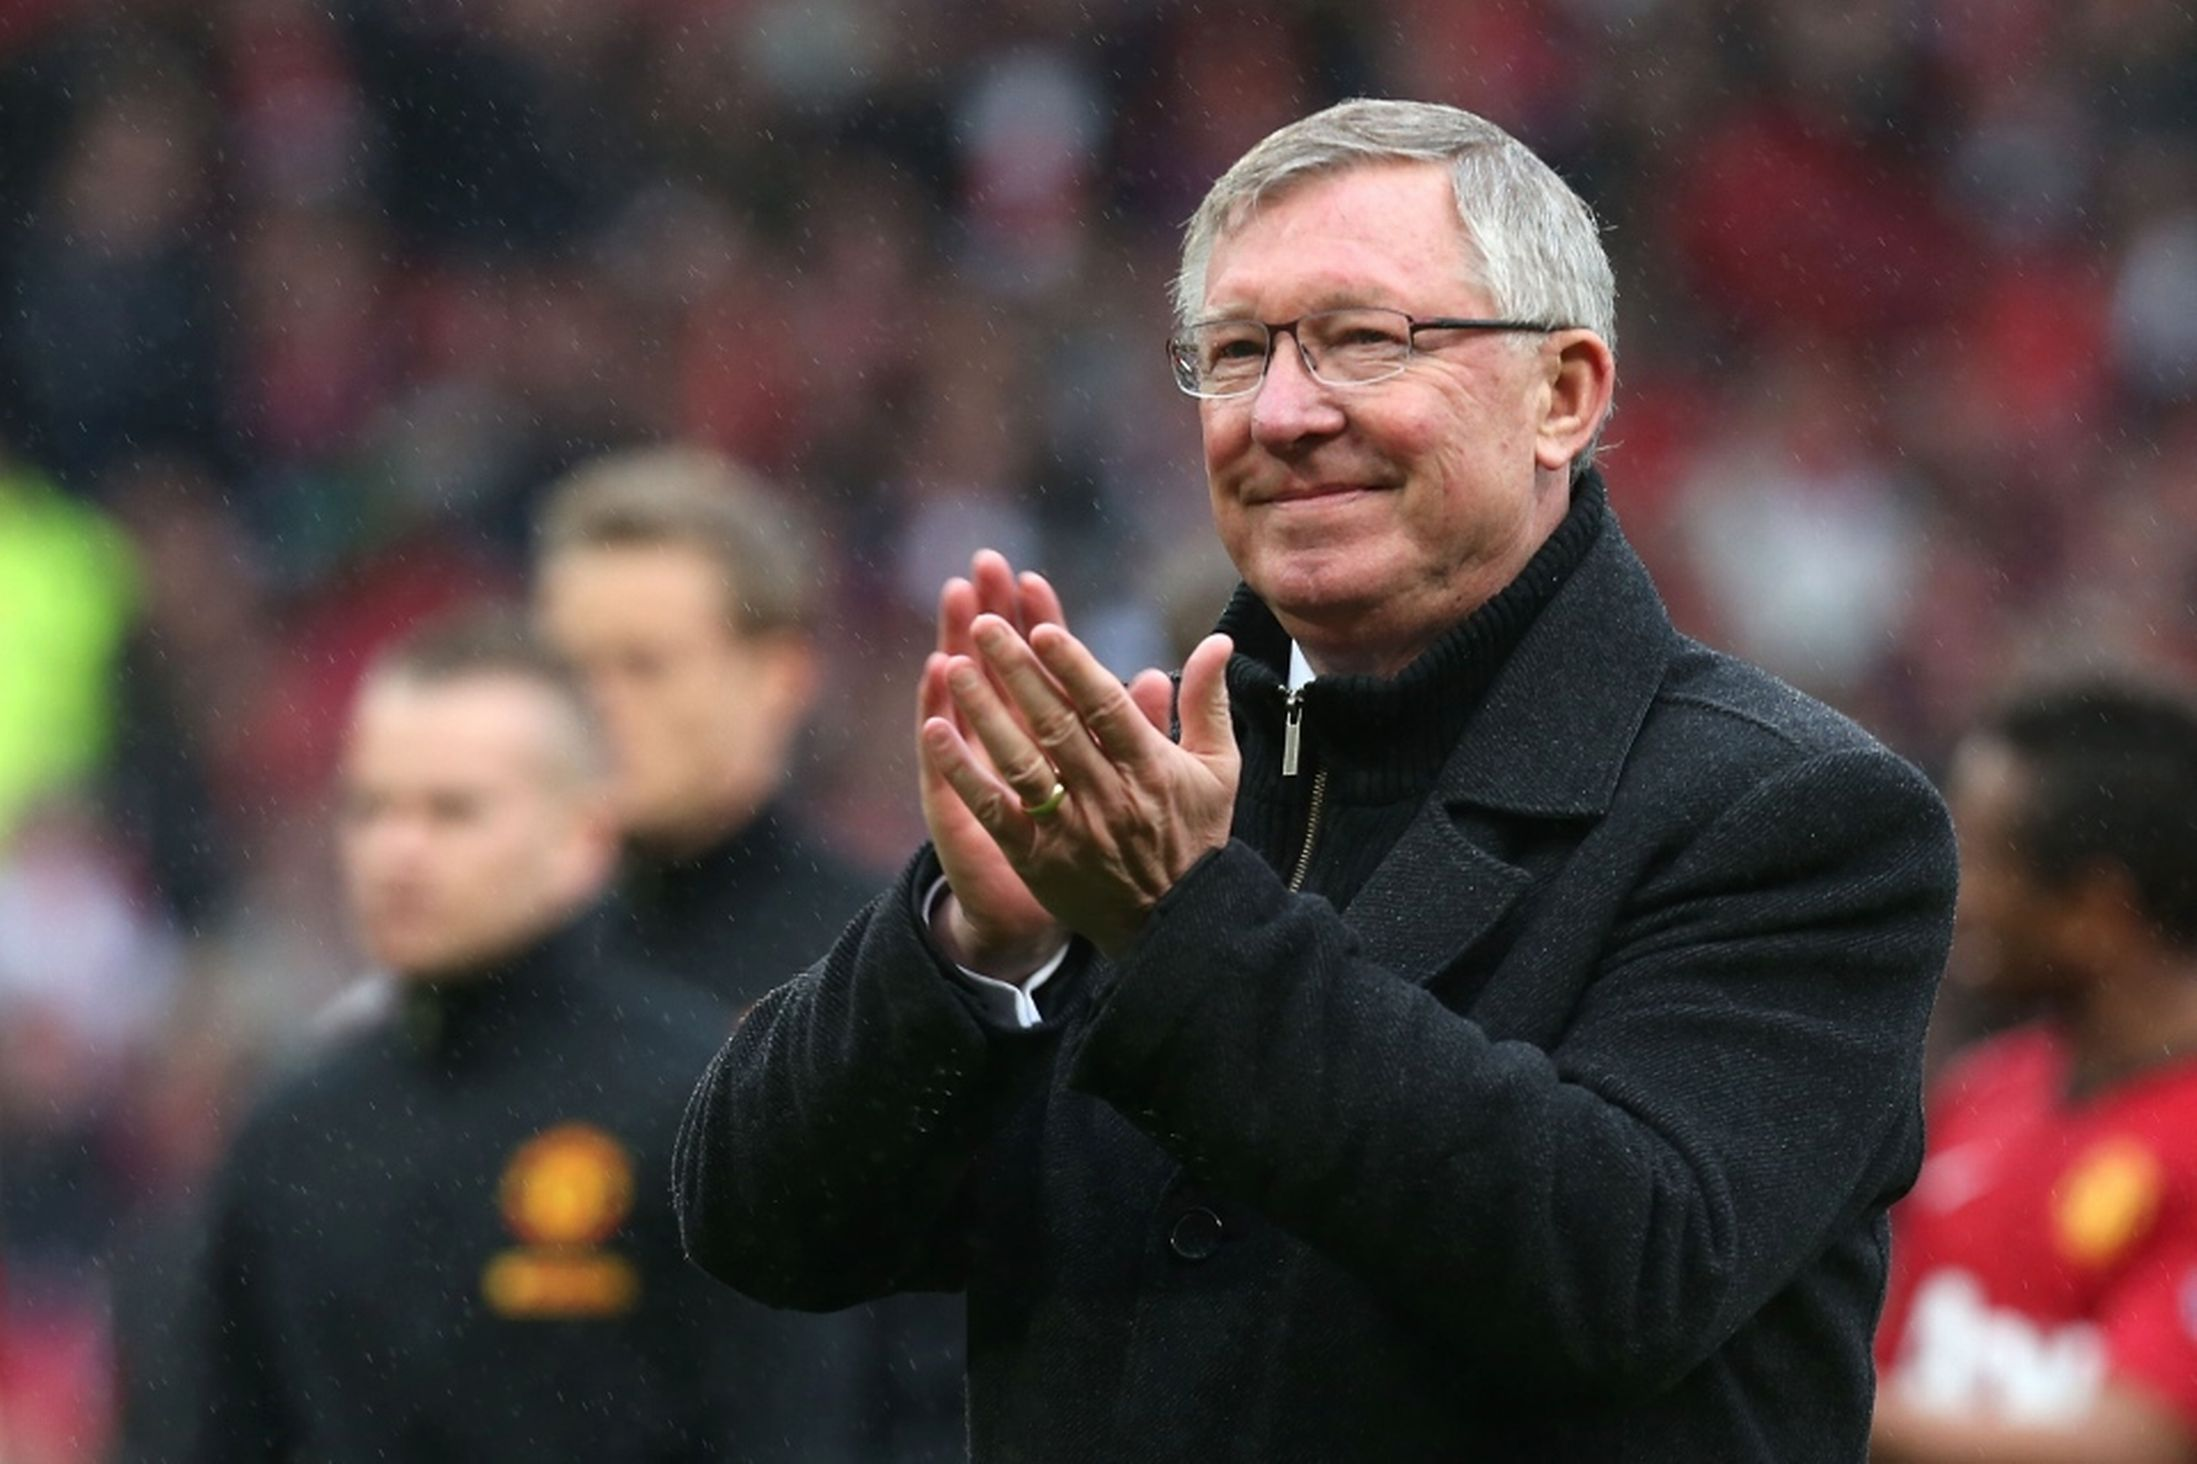 Lot 2 - Meet legendary former Manchester United manager Sir Alex Ferguson, game & hospitality Old Trafford